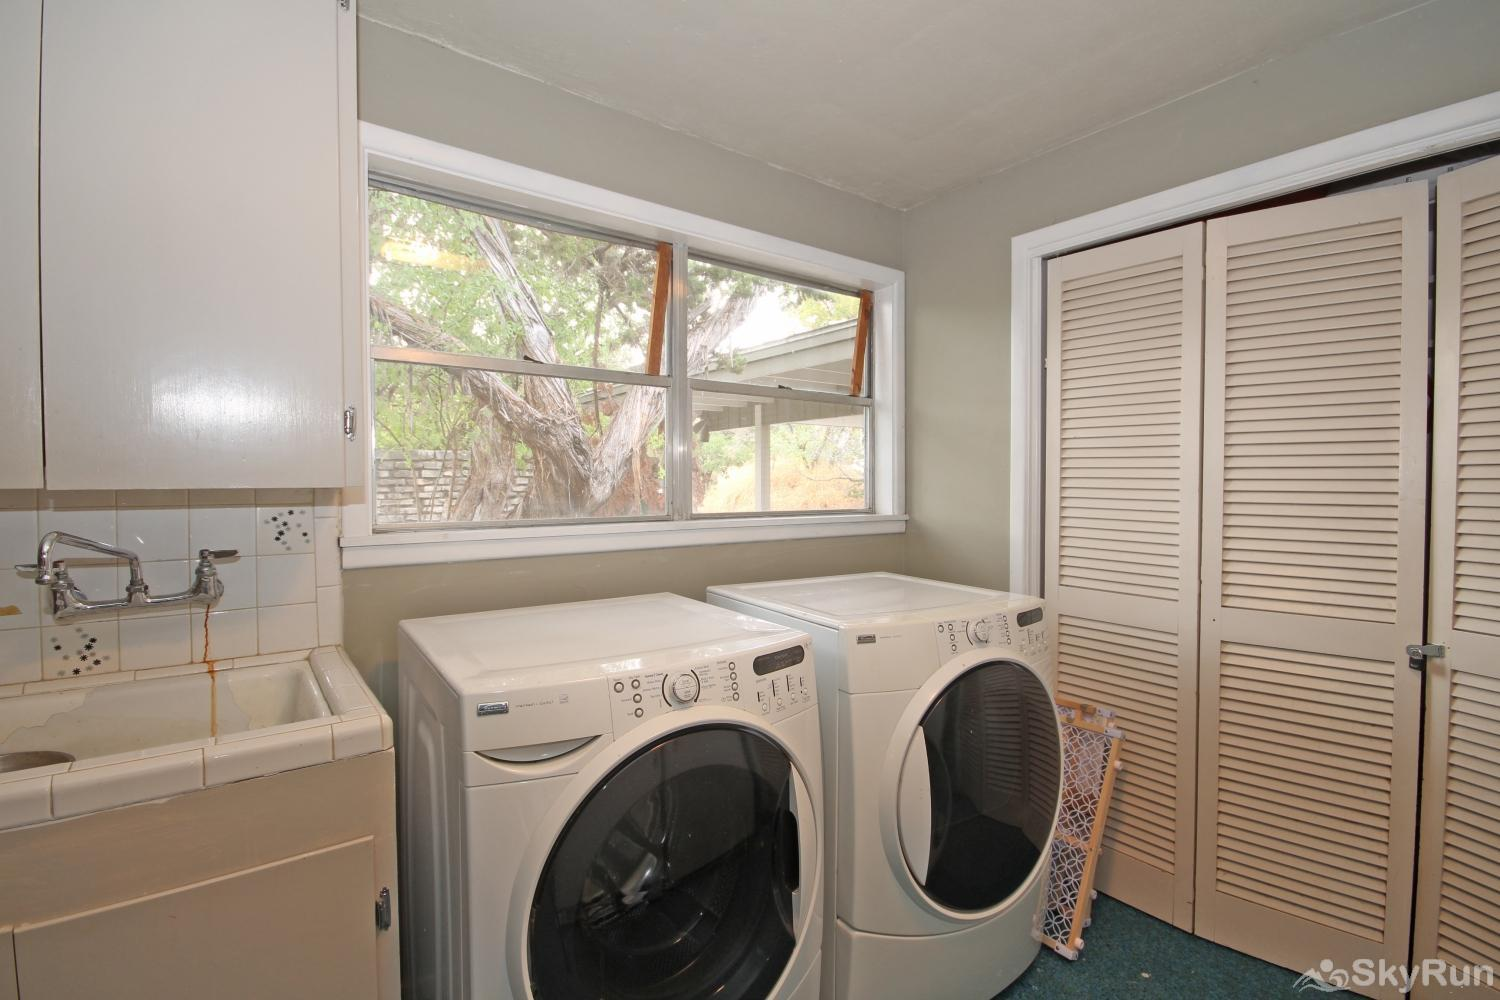 SKY VIEW LAKE HOUSE Laundry room available for guest use